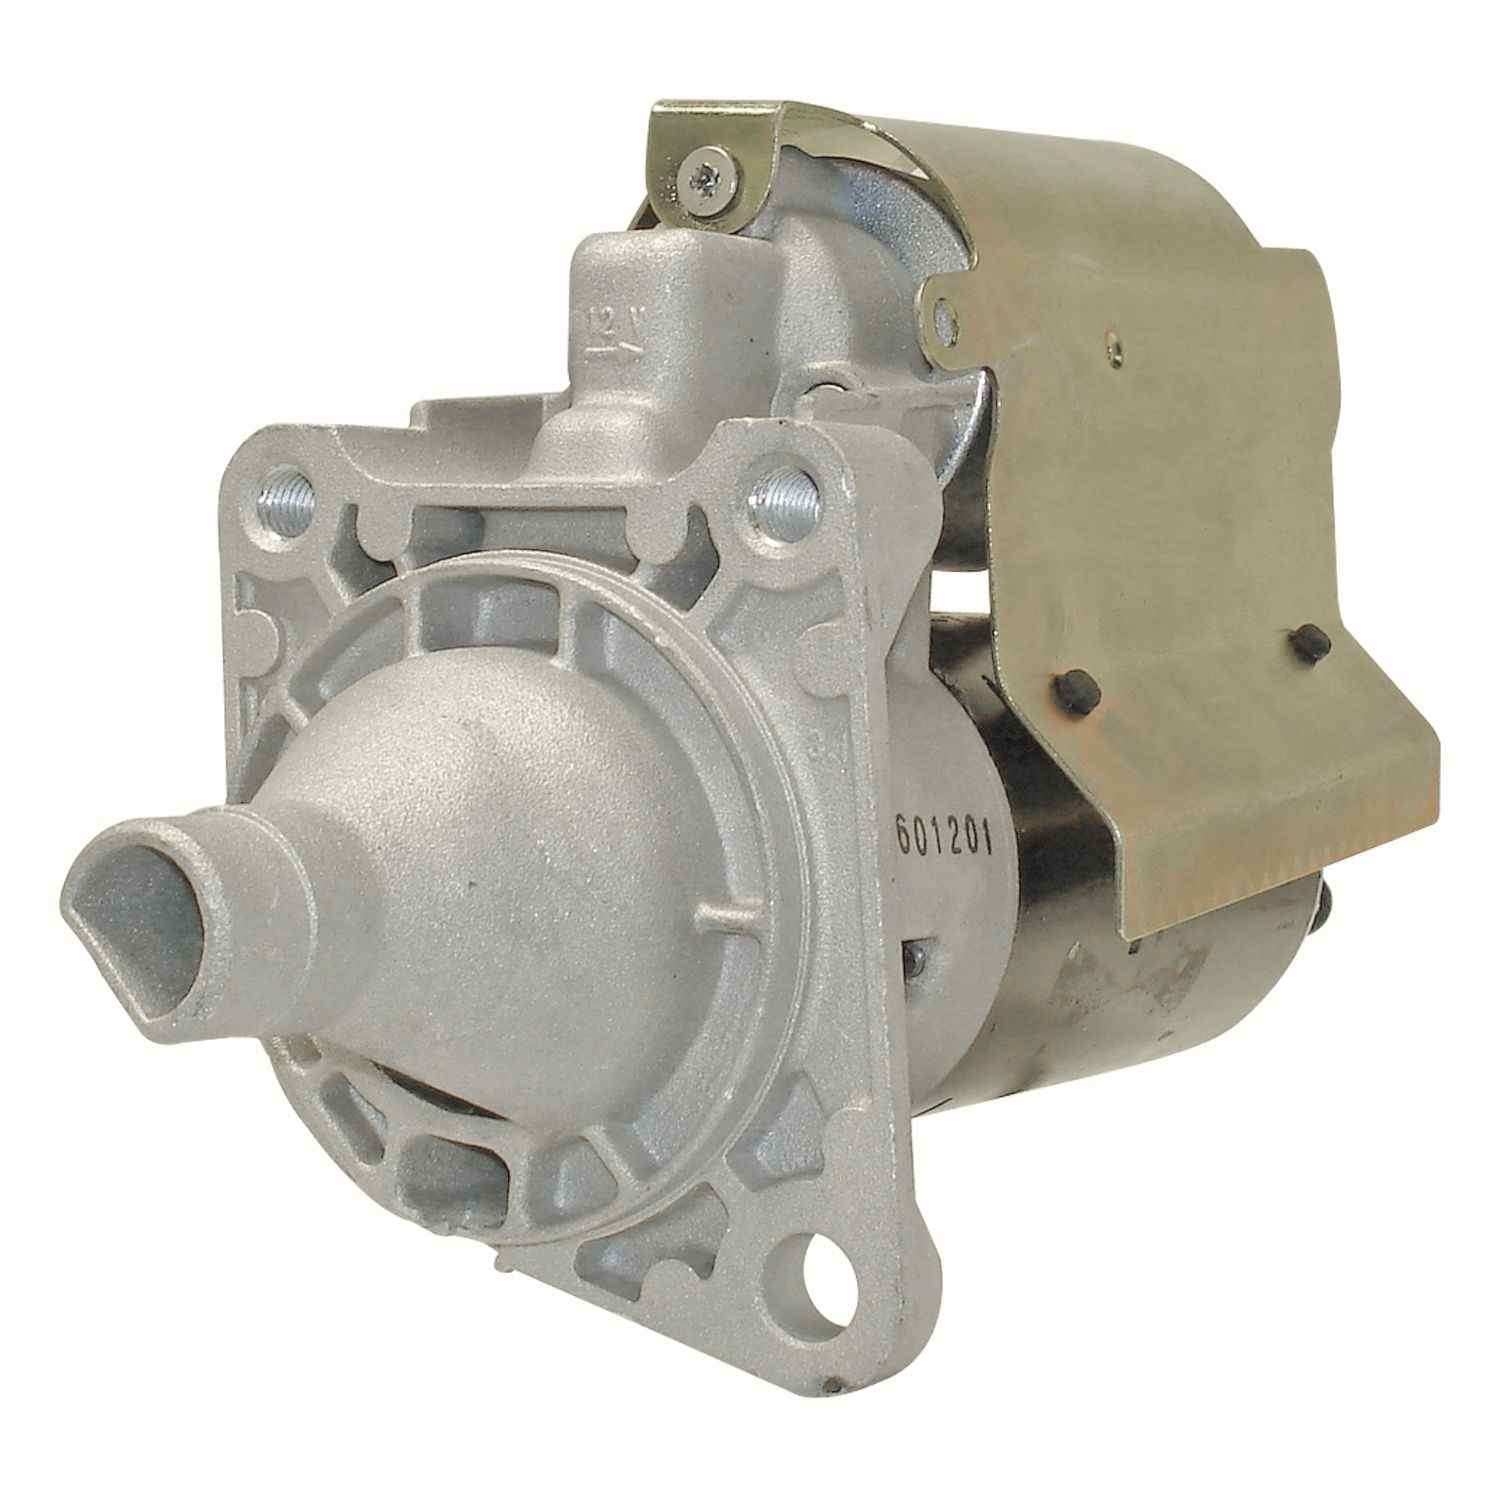 ACDELCO PROFESSIONAL - Reman Starter Motor - DCC 336-1478